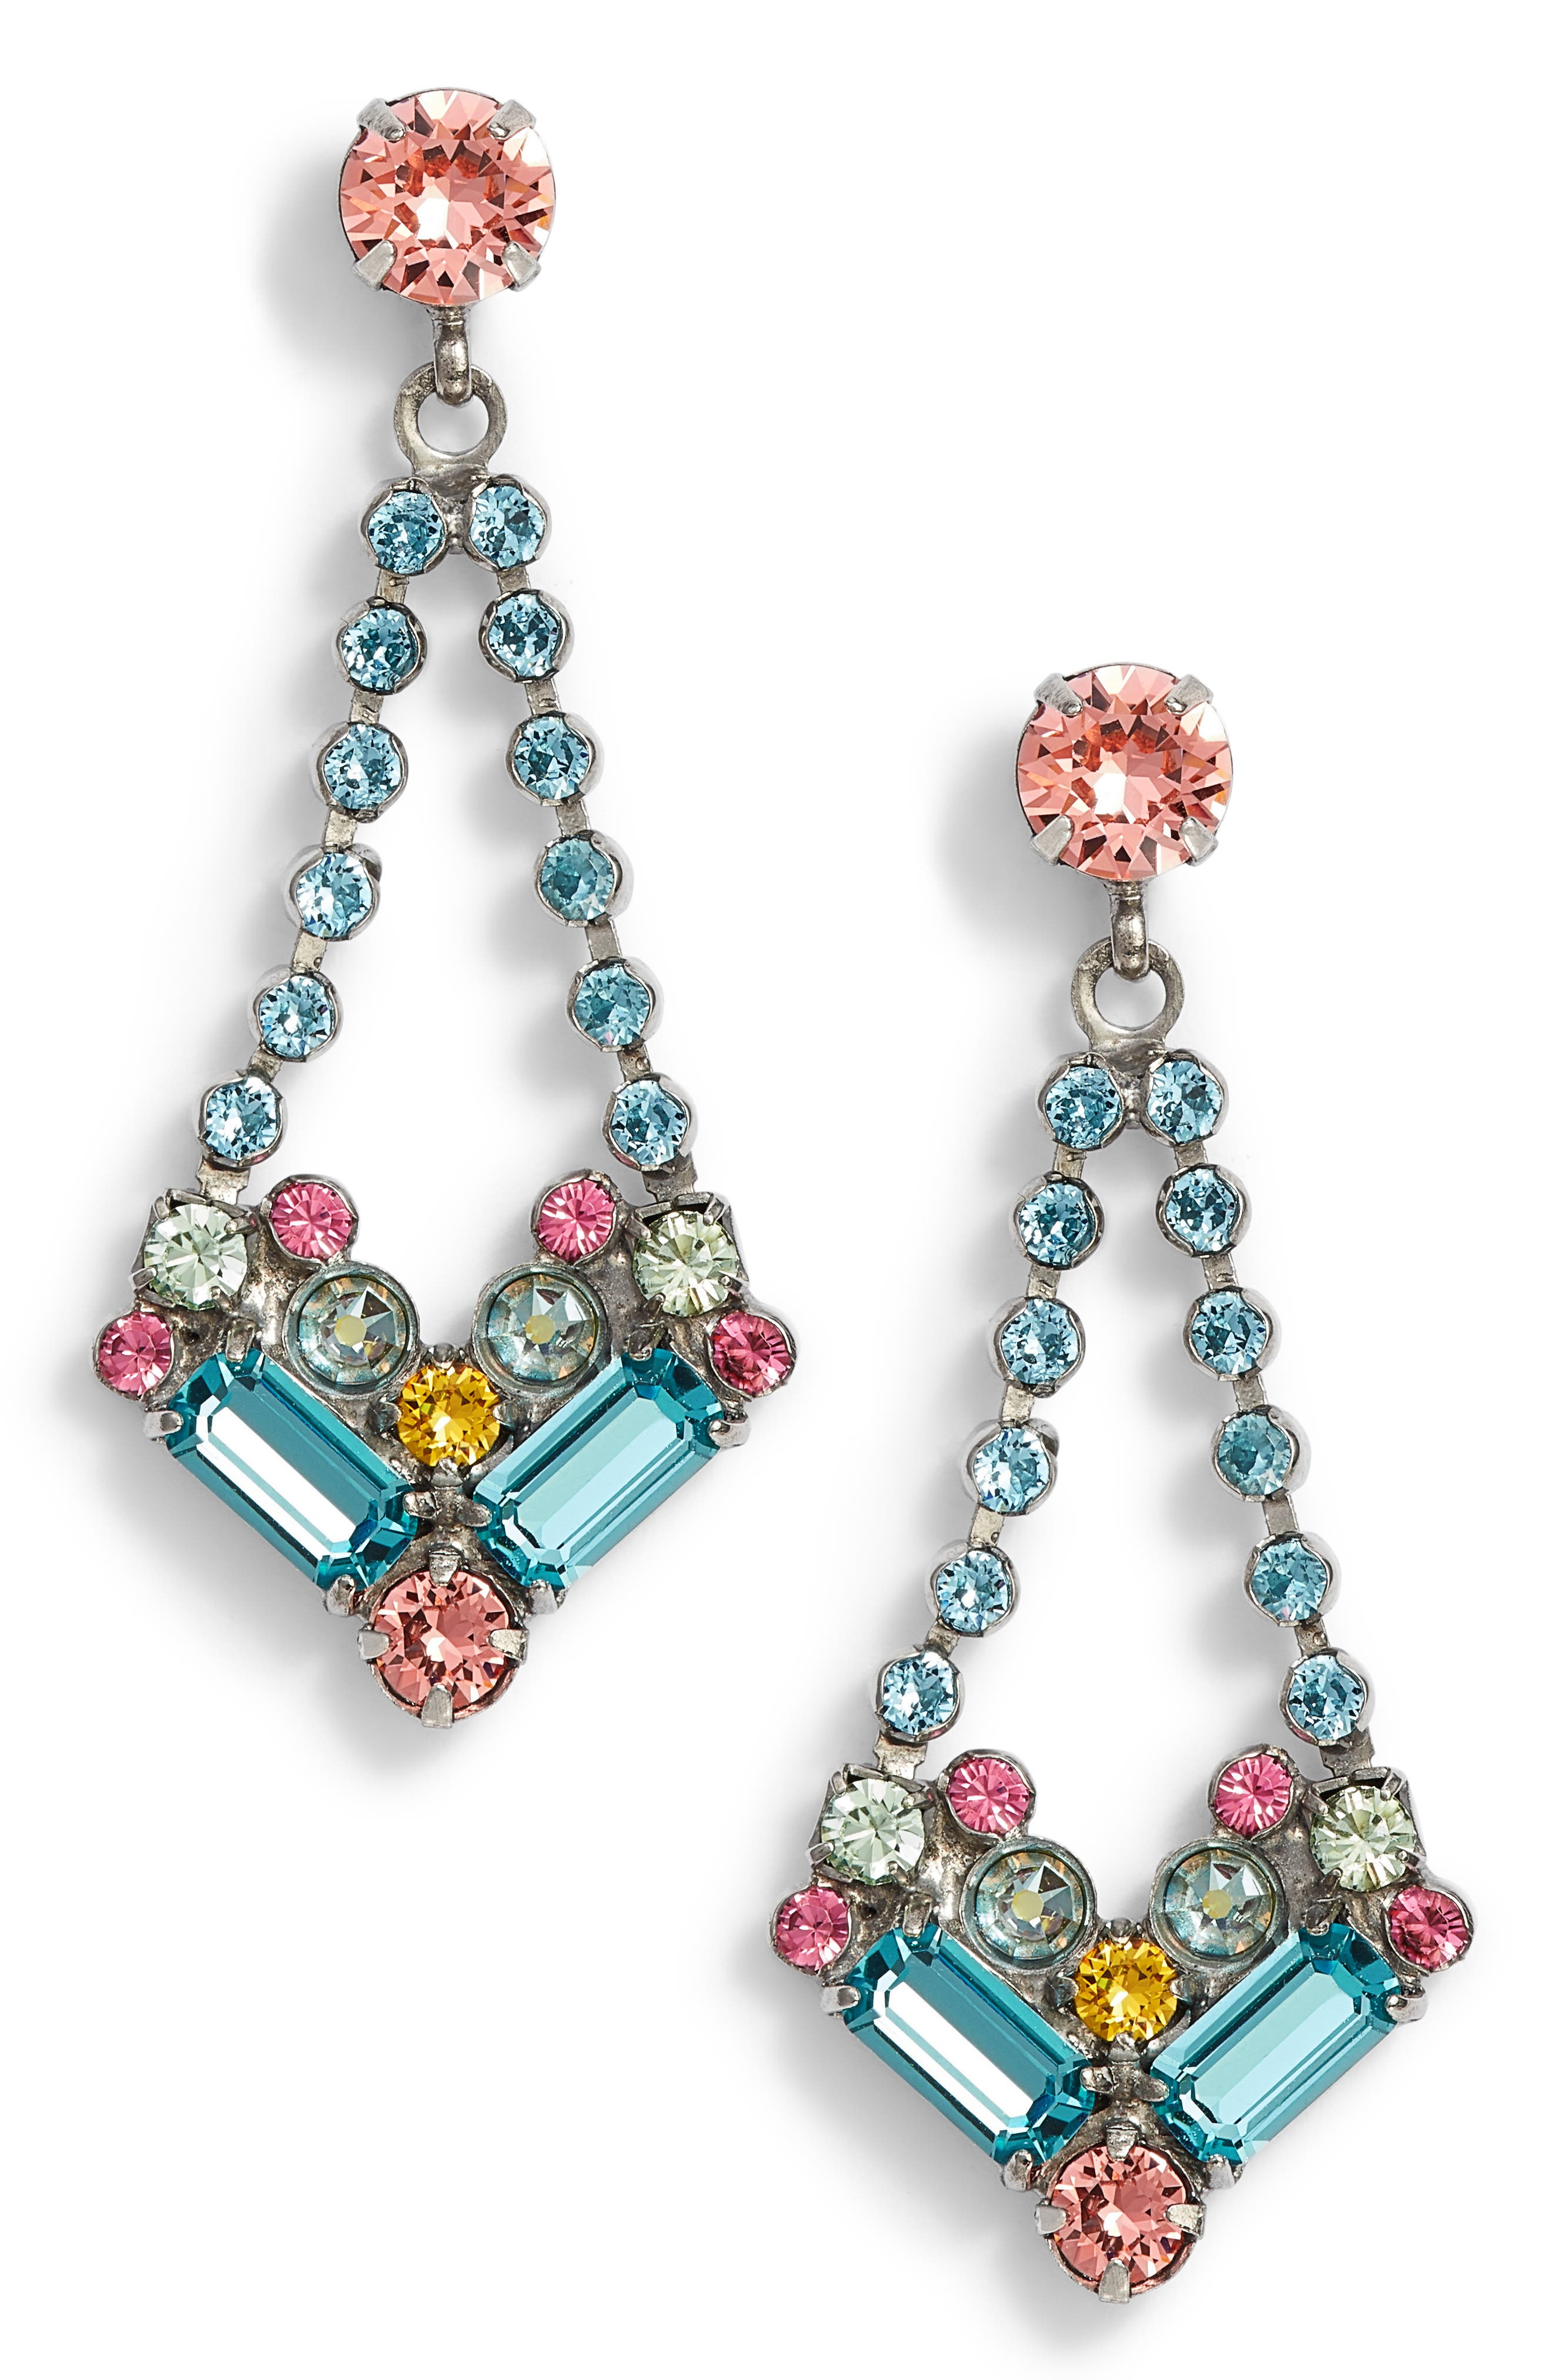 Kalmia Earrings,                             Main thumbnail 1, color,                             400